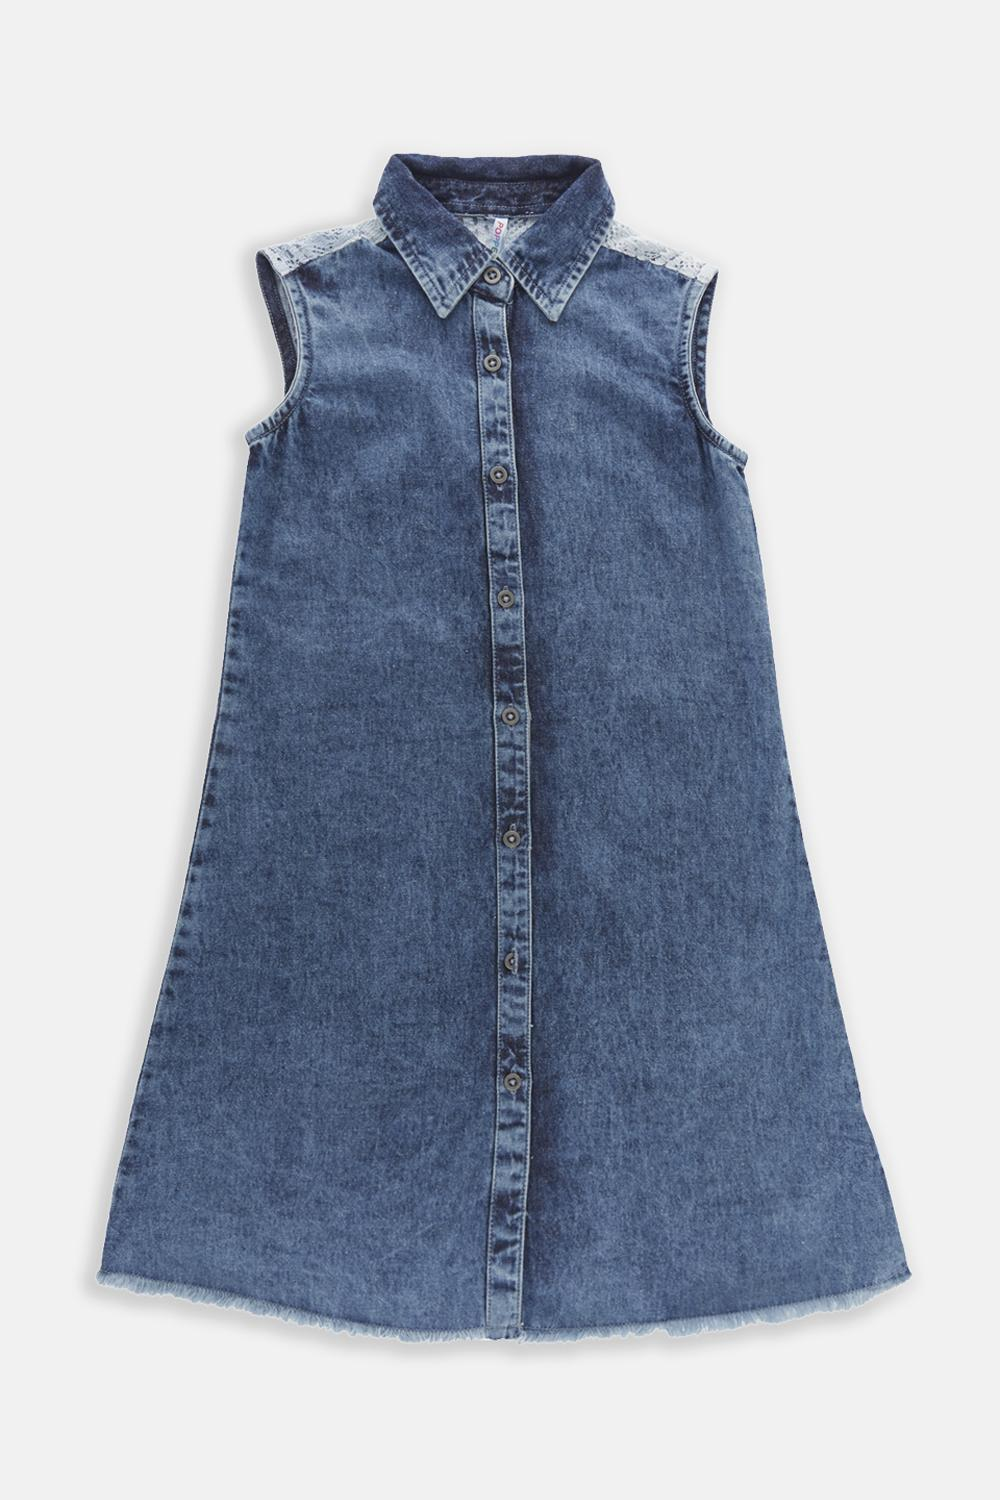 e9a8617ec34 Poppers by Pantaloons Frocks, Pantaloons Blue Dress for Girls at ...